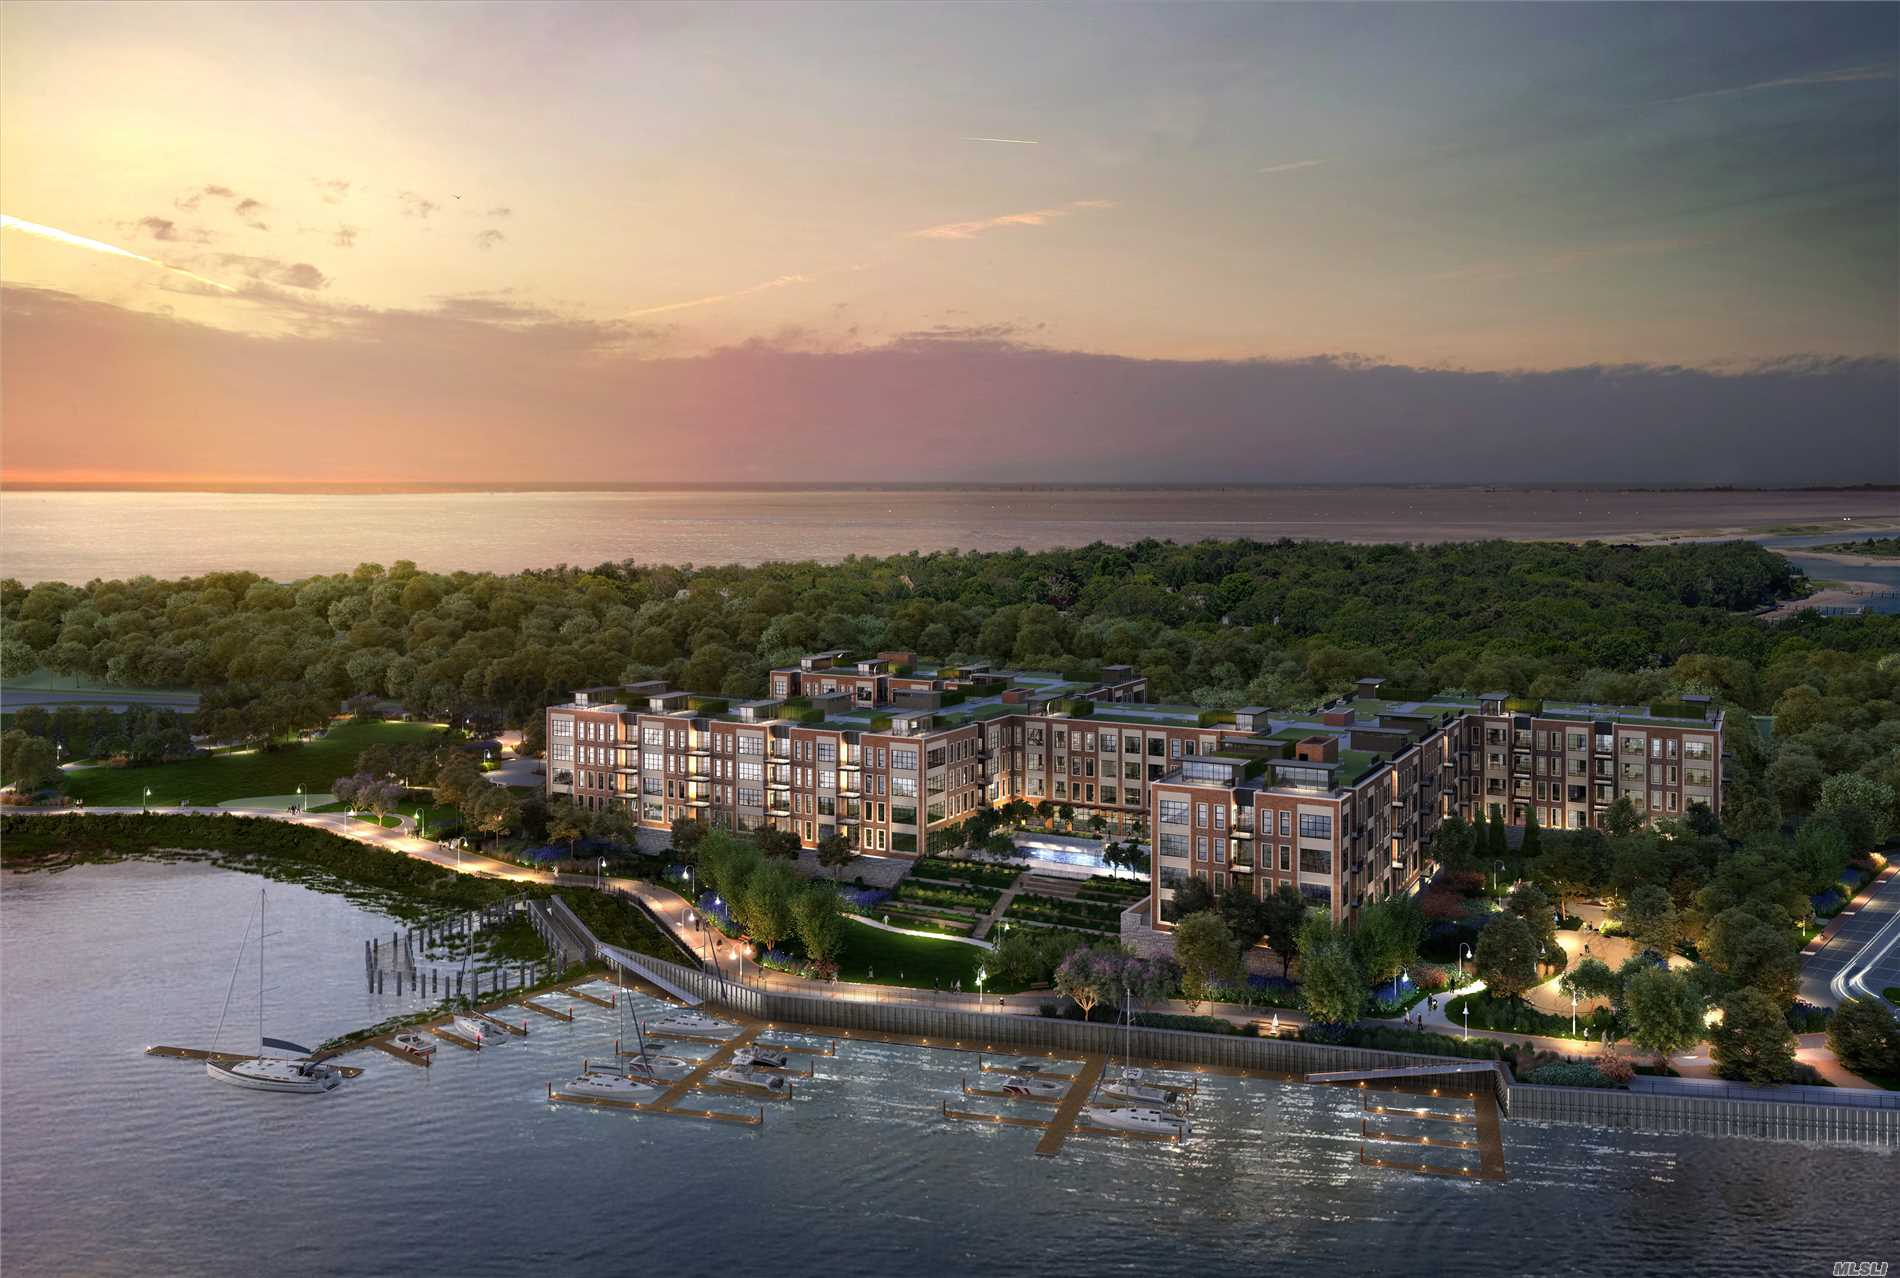 Property for sale at 100 Garvies Point Road # 1331, Glen Cove NY 11542, Glen Cove,  New York 11542